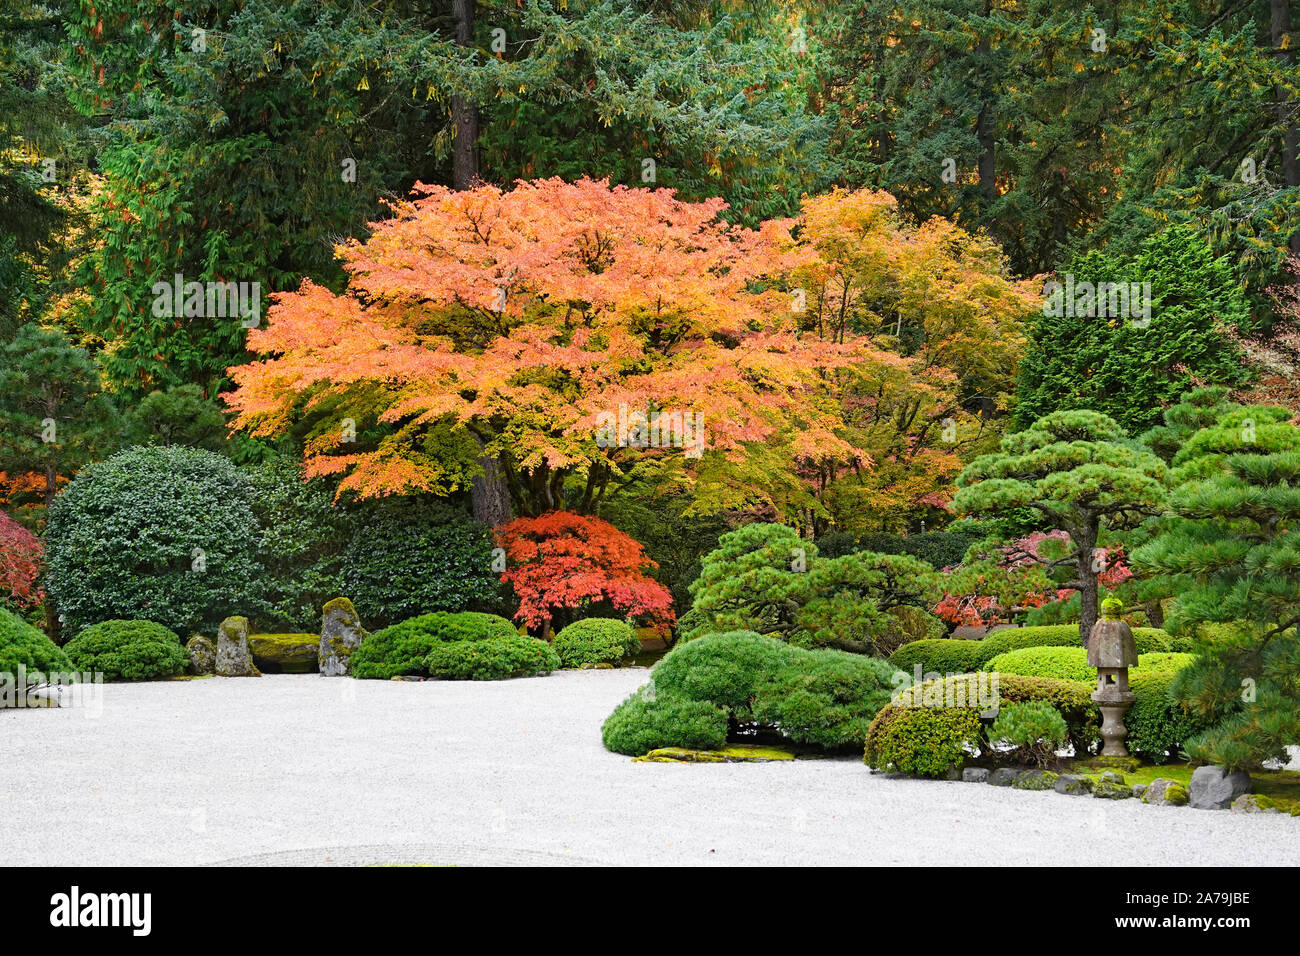 Maple trees and other exotic deciduous trees turning yellow and red in the world famous Japanese Gardens in Portland, Oregon, in Autumn. Stock Photo